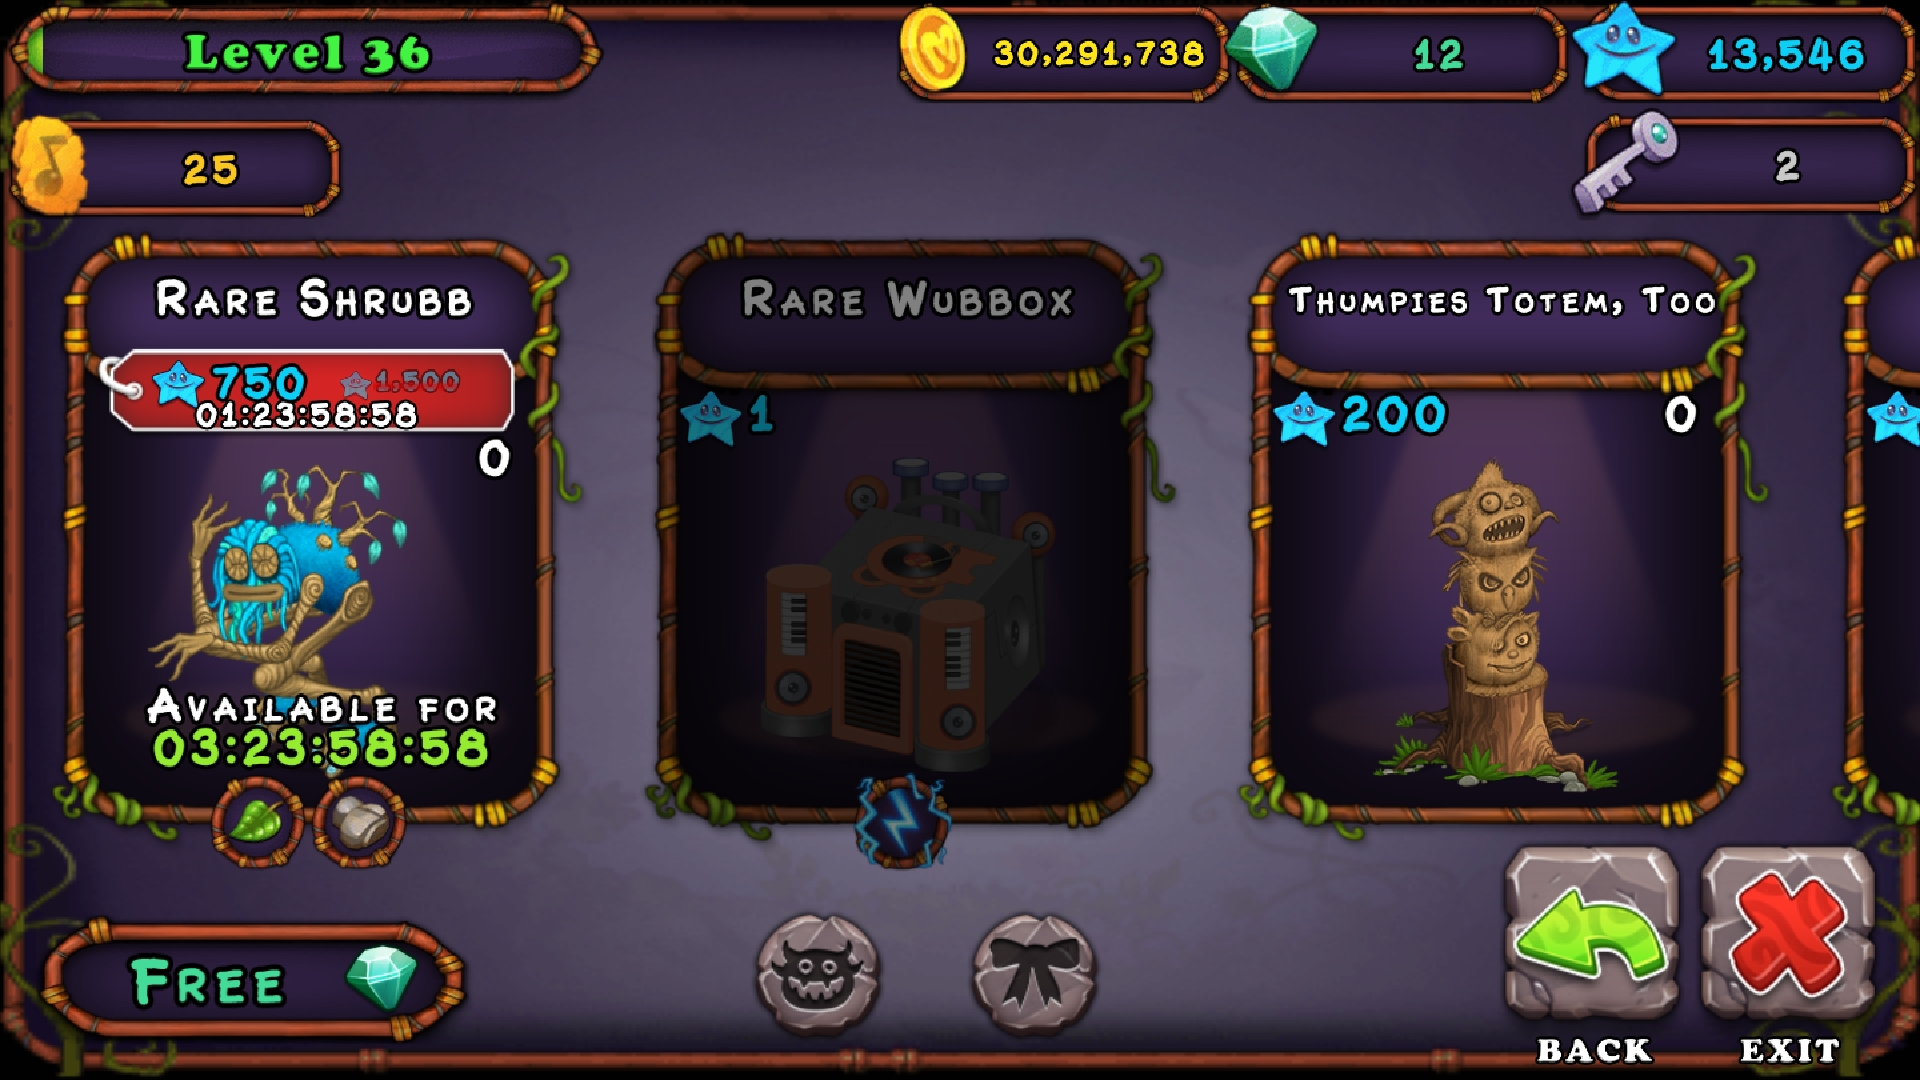 Rare Shrubb just came in starshop!